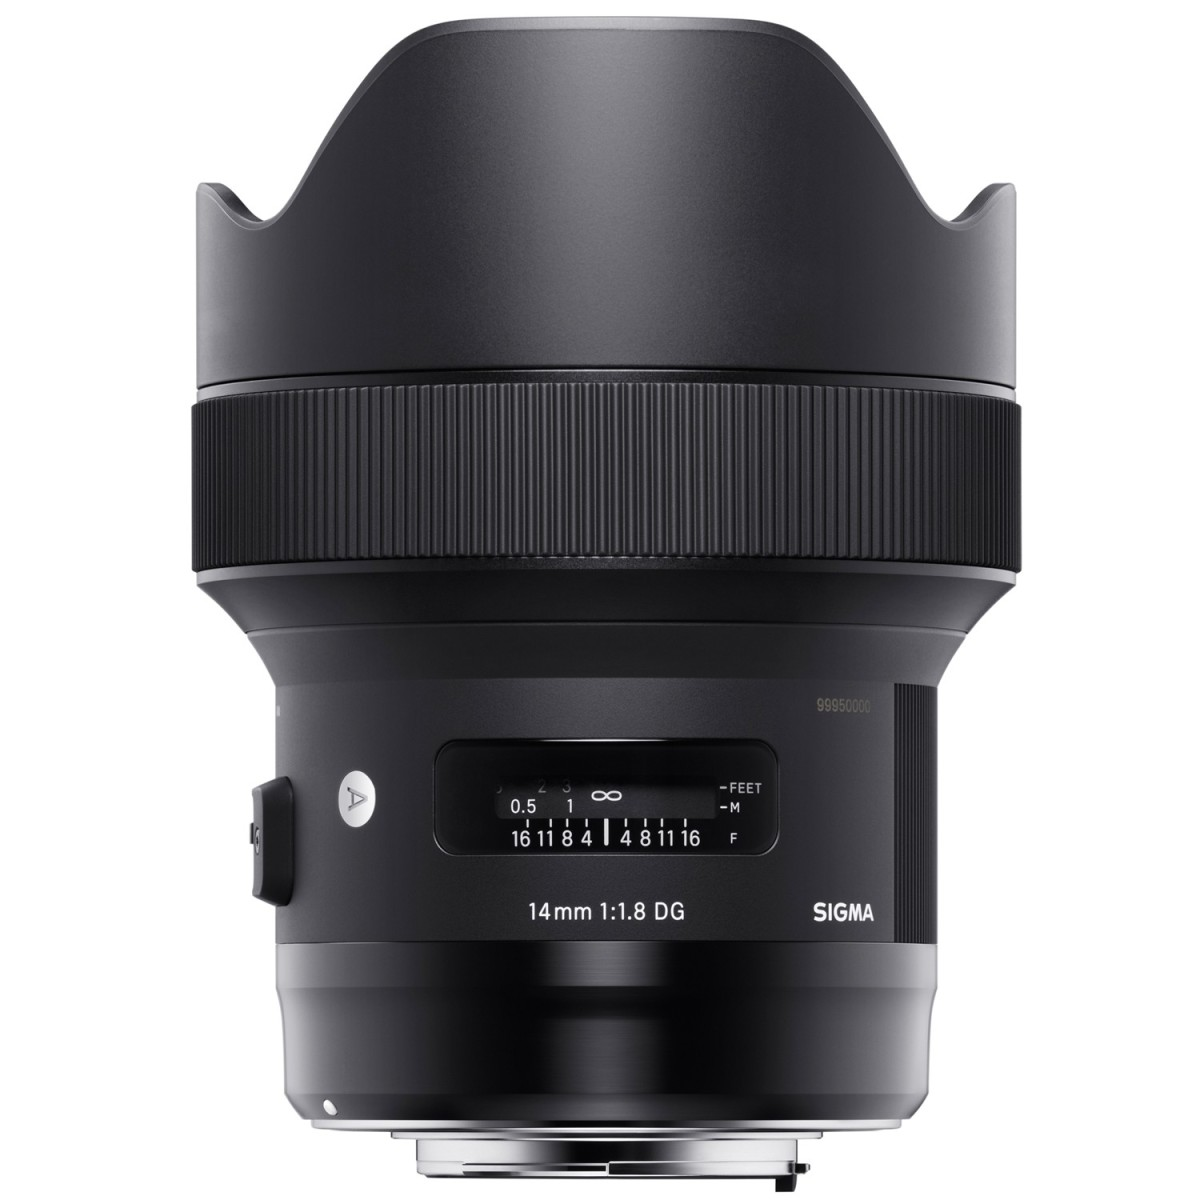 Sigma debuts the world's first full-frame 14mm f/1.8 lens